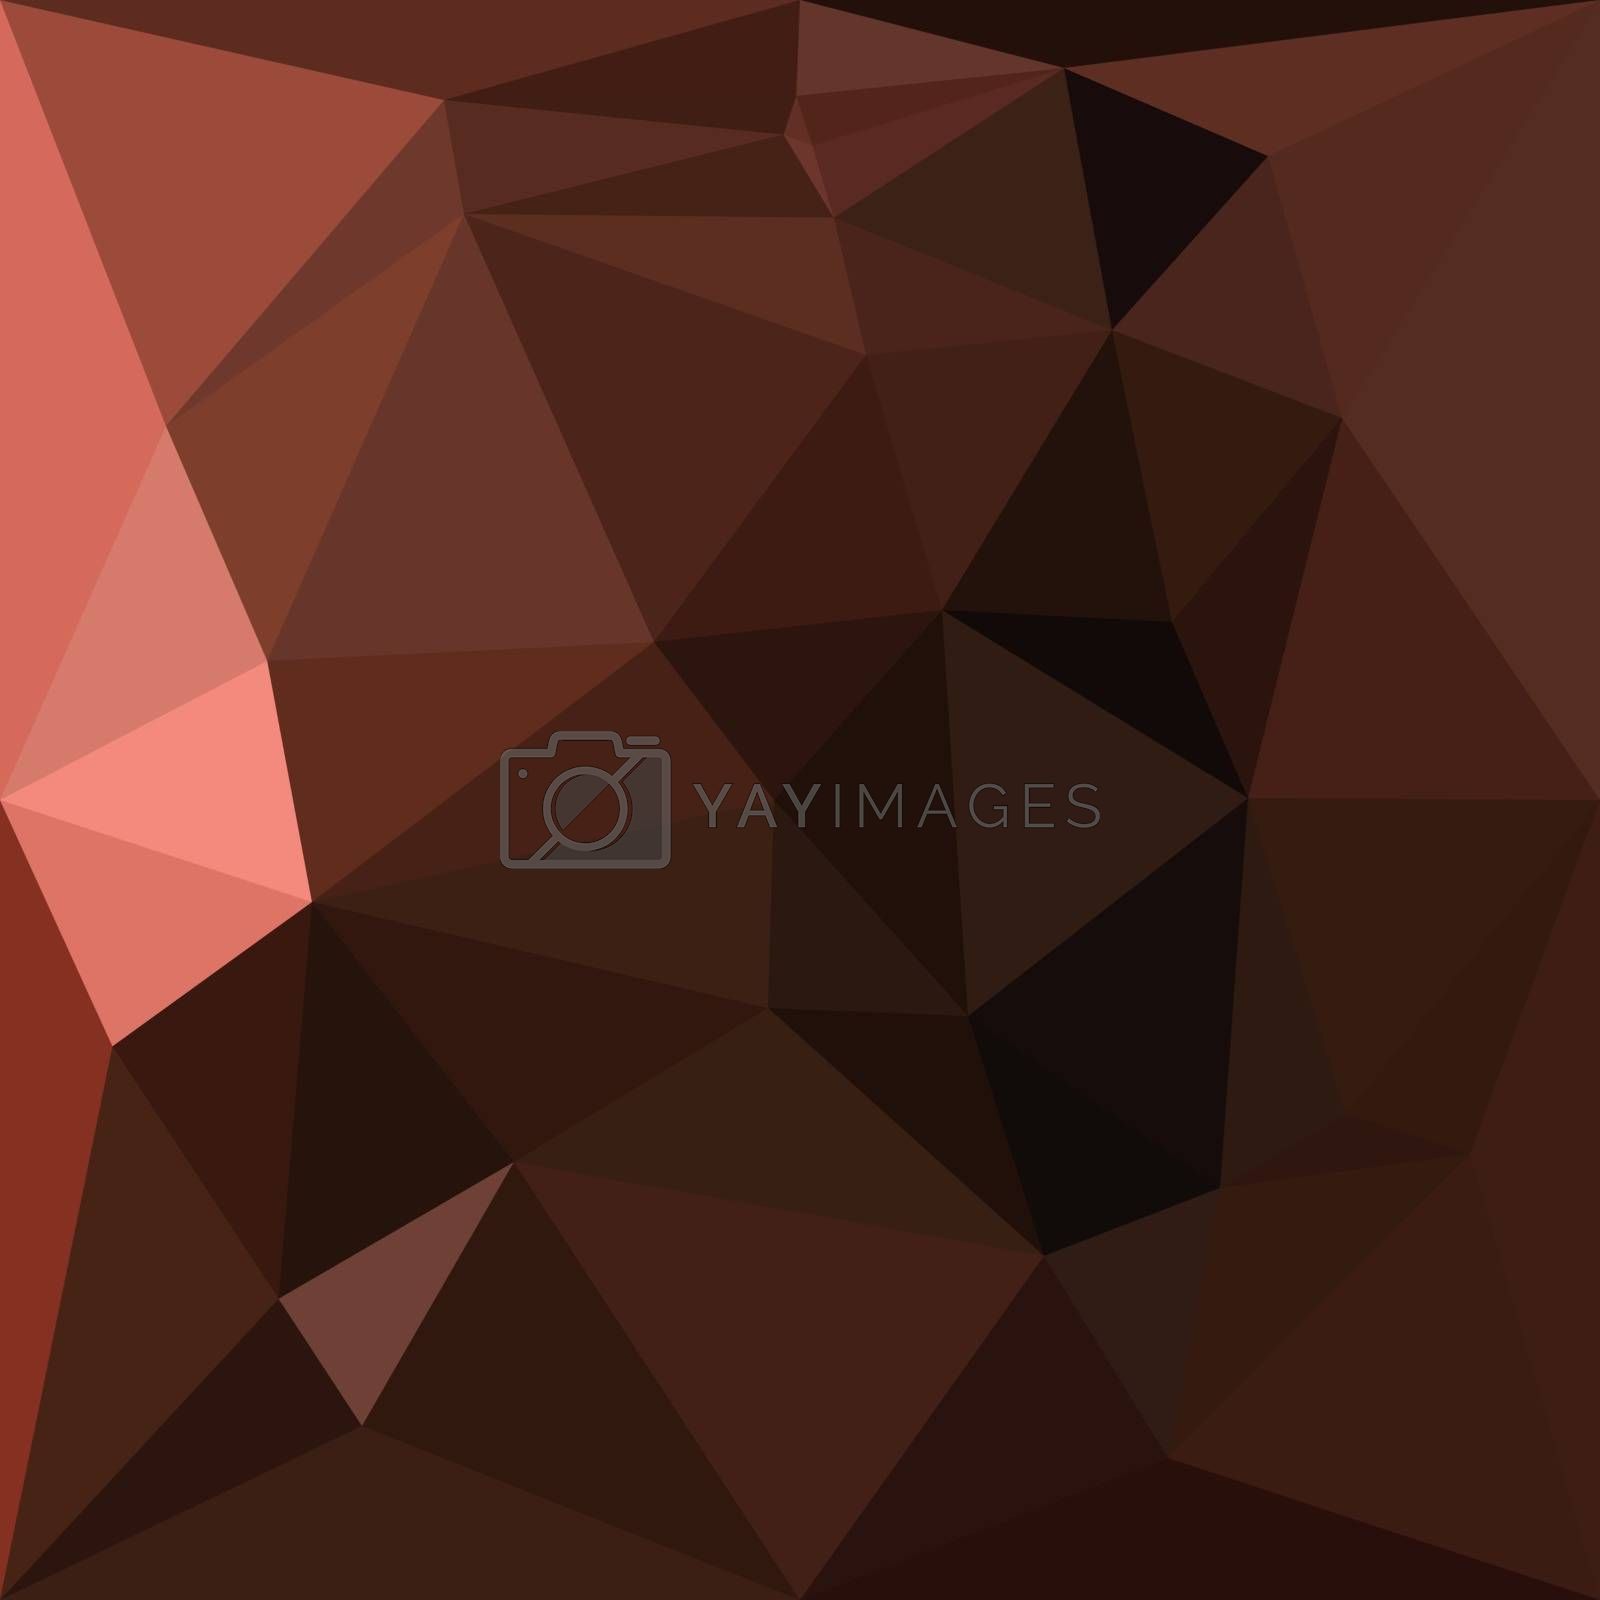 Low polygon style illustration of a saddle brown abstract geometric background.